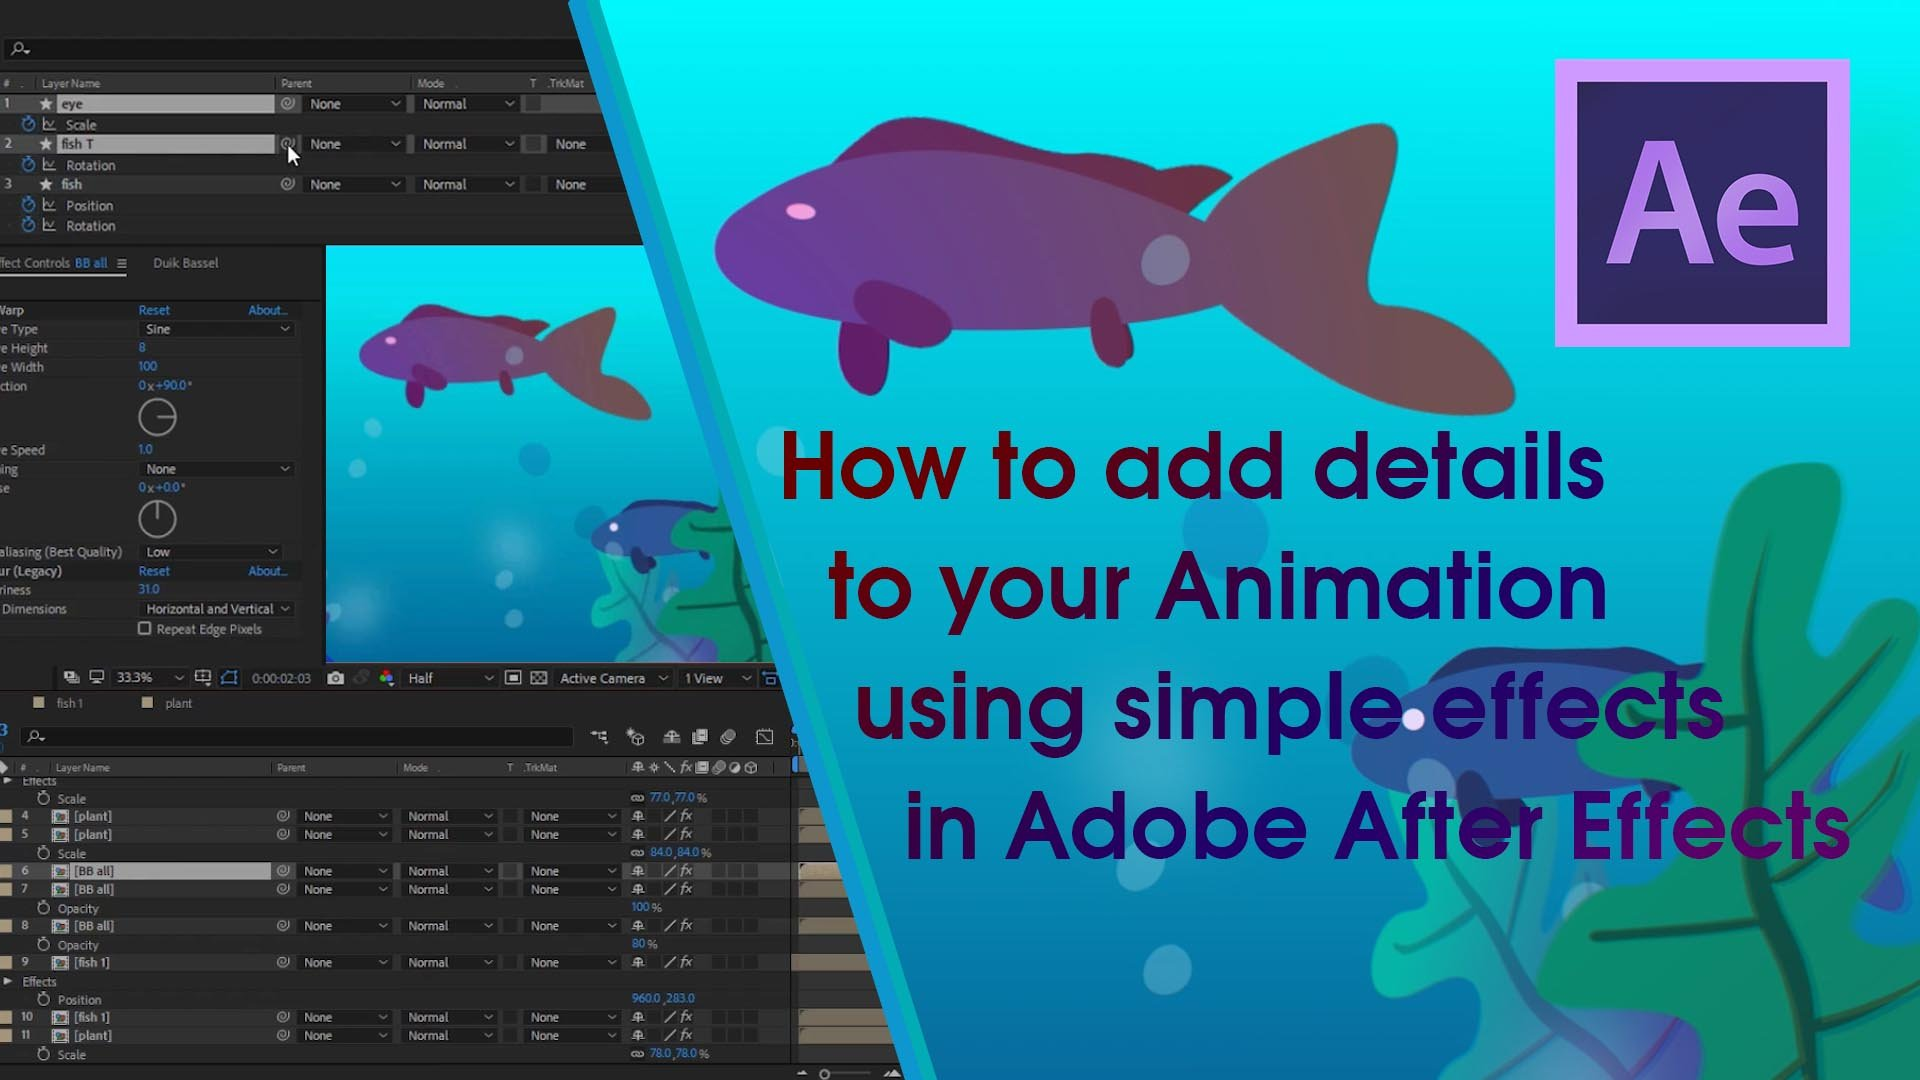 How to add details to your Animation using simple effects in Adobe After Effects